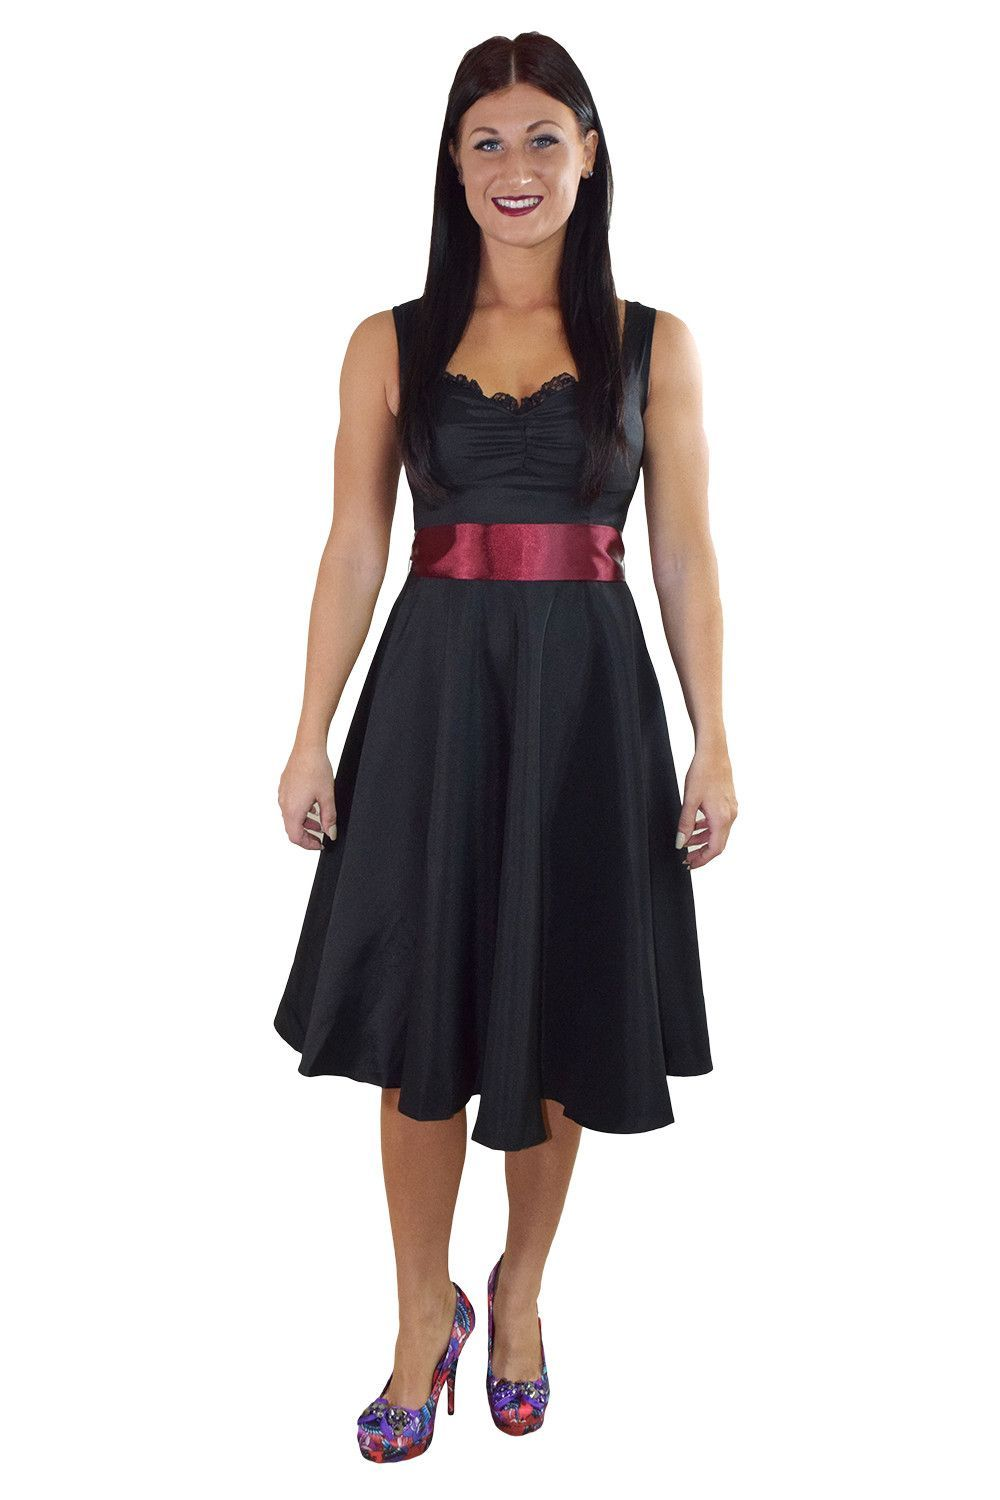 64163dcf55 60 s Vinatge Retro Design Little Black Satin Dress with Burgundy Sash  Ribbon Belt